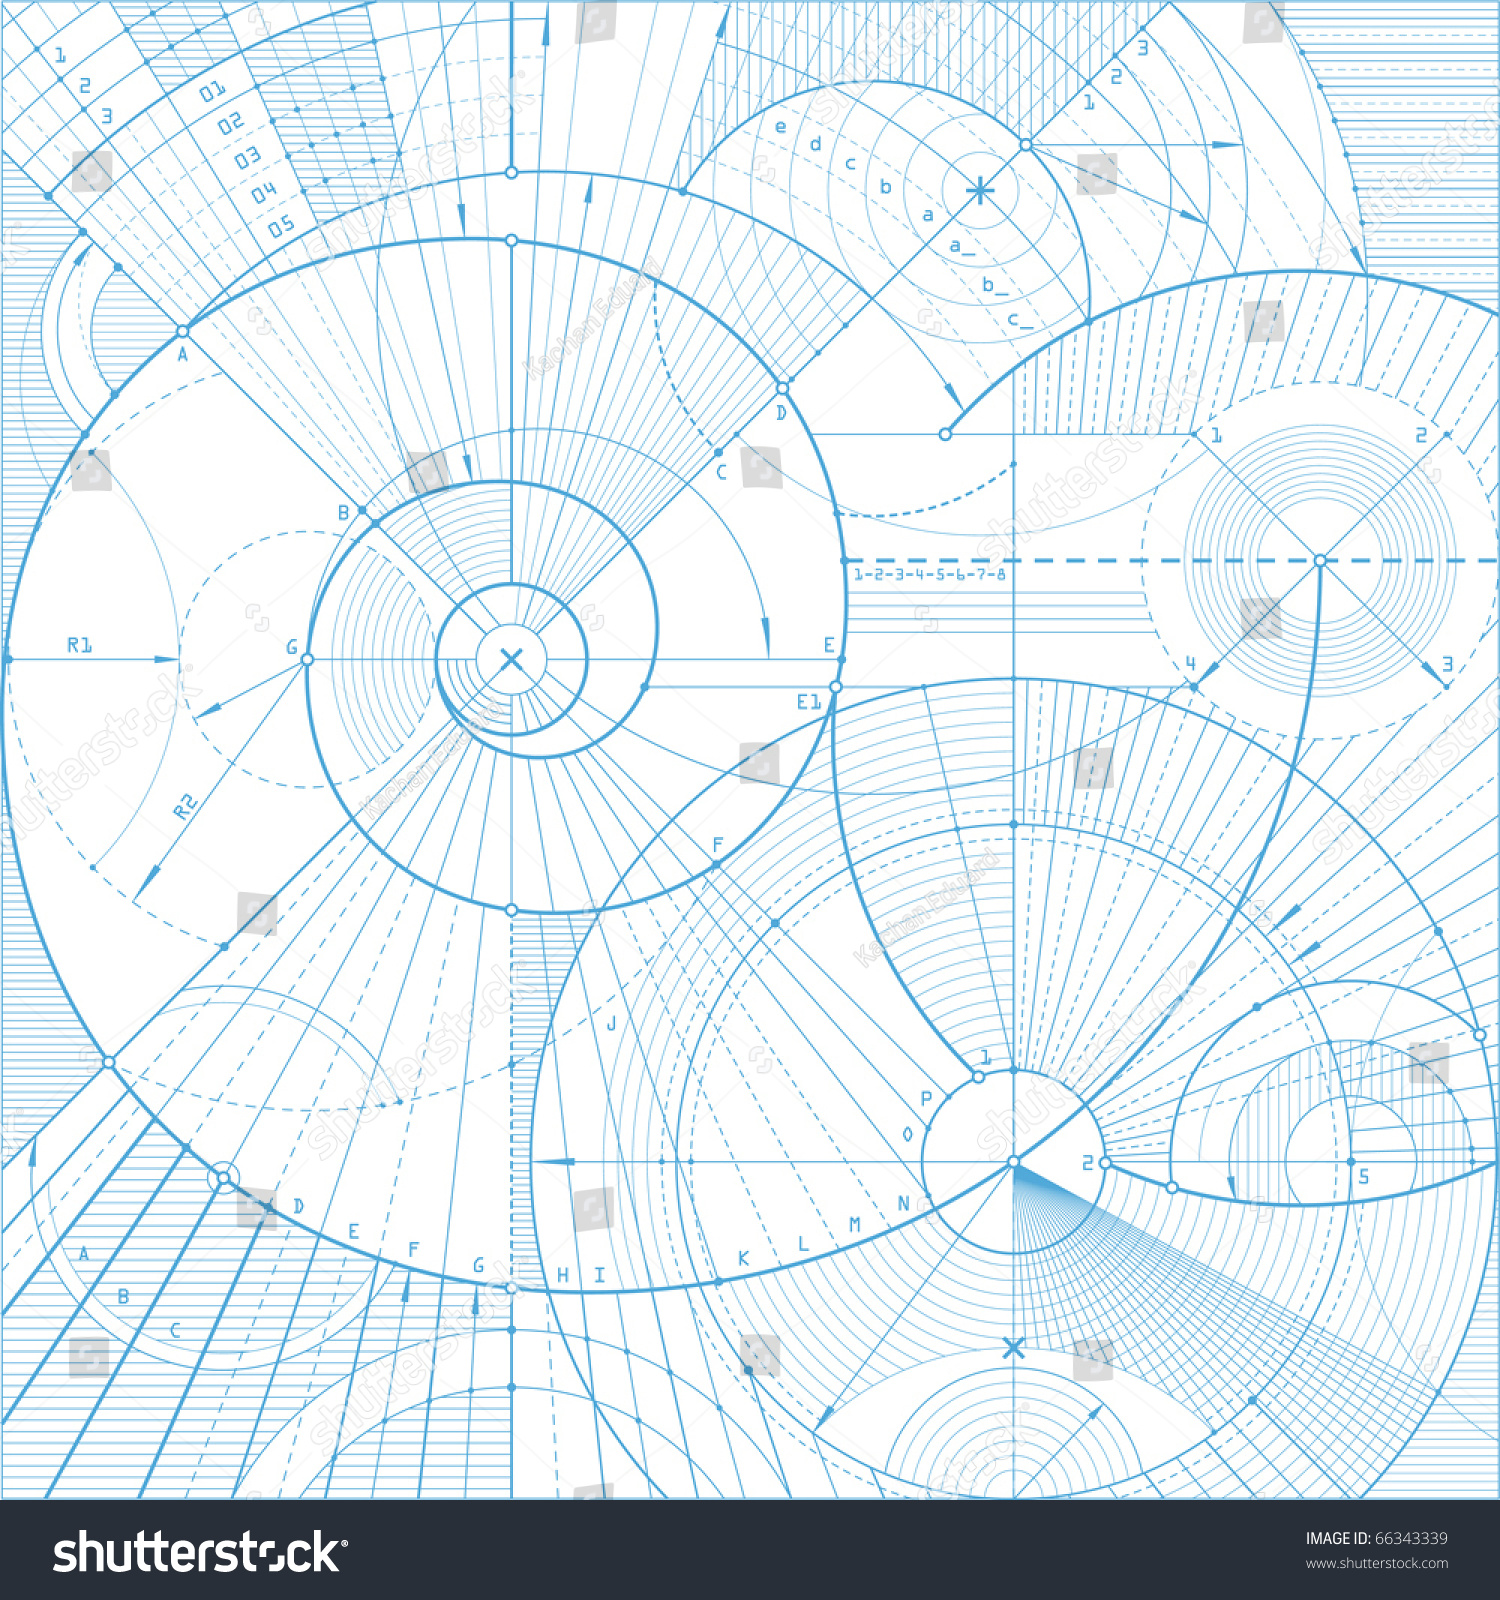 Vector Illustration Of A Technical Draft Background